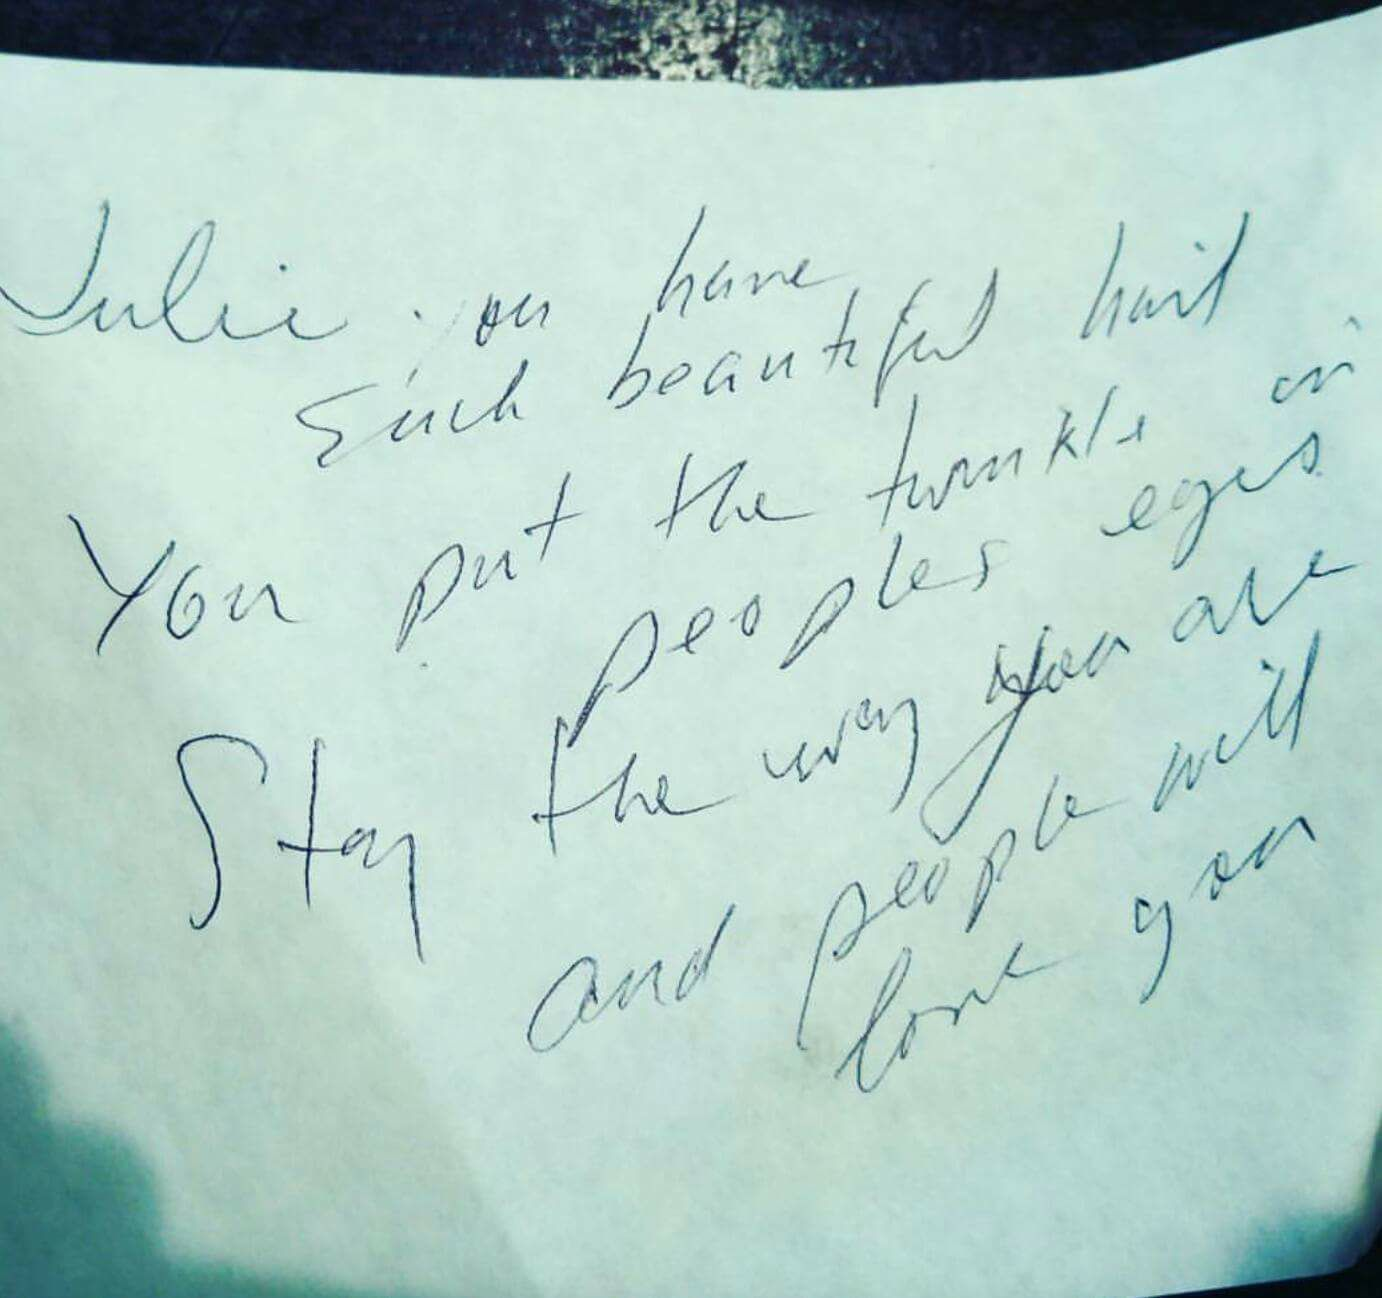 A customer wrote this for me when I was serving and bartending in New Orleans. It really made my sour Day wonderful.  -Julie   Julie, you have such a beautiful heart.  You put the twinkle in people's eyes.  Stay the way you are and people will love you.